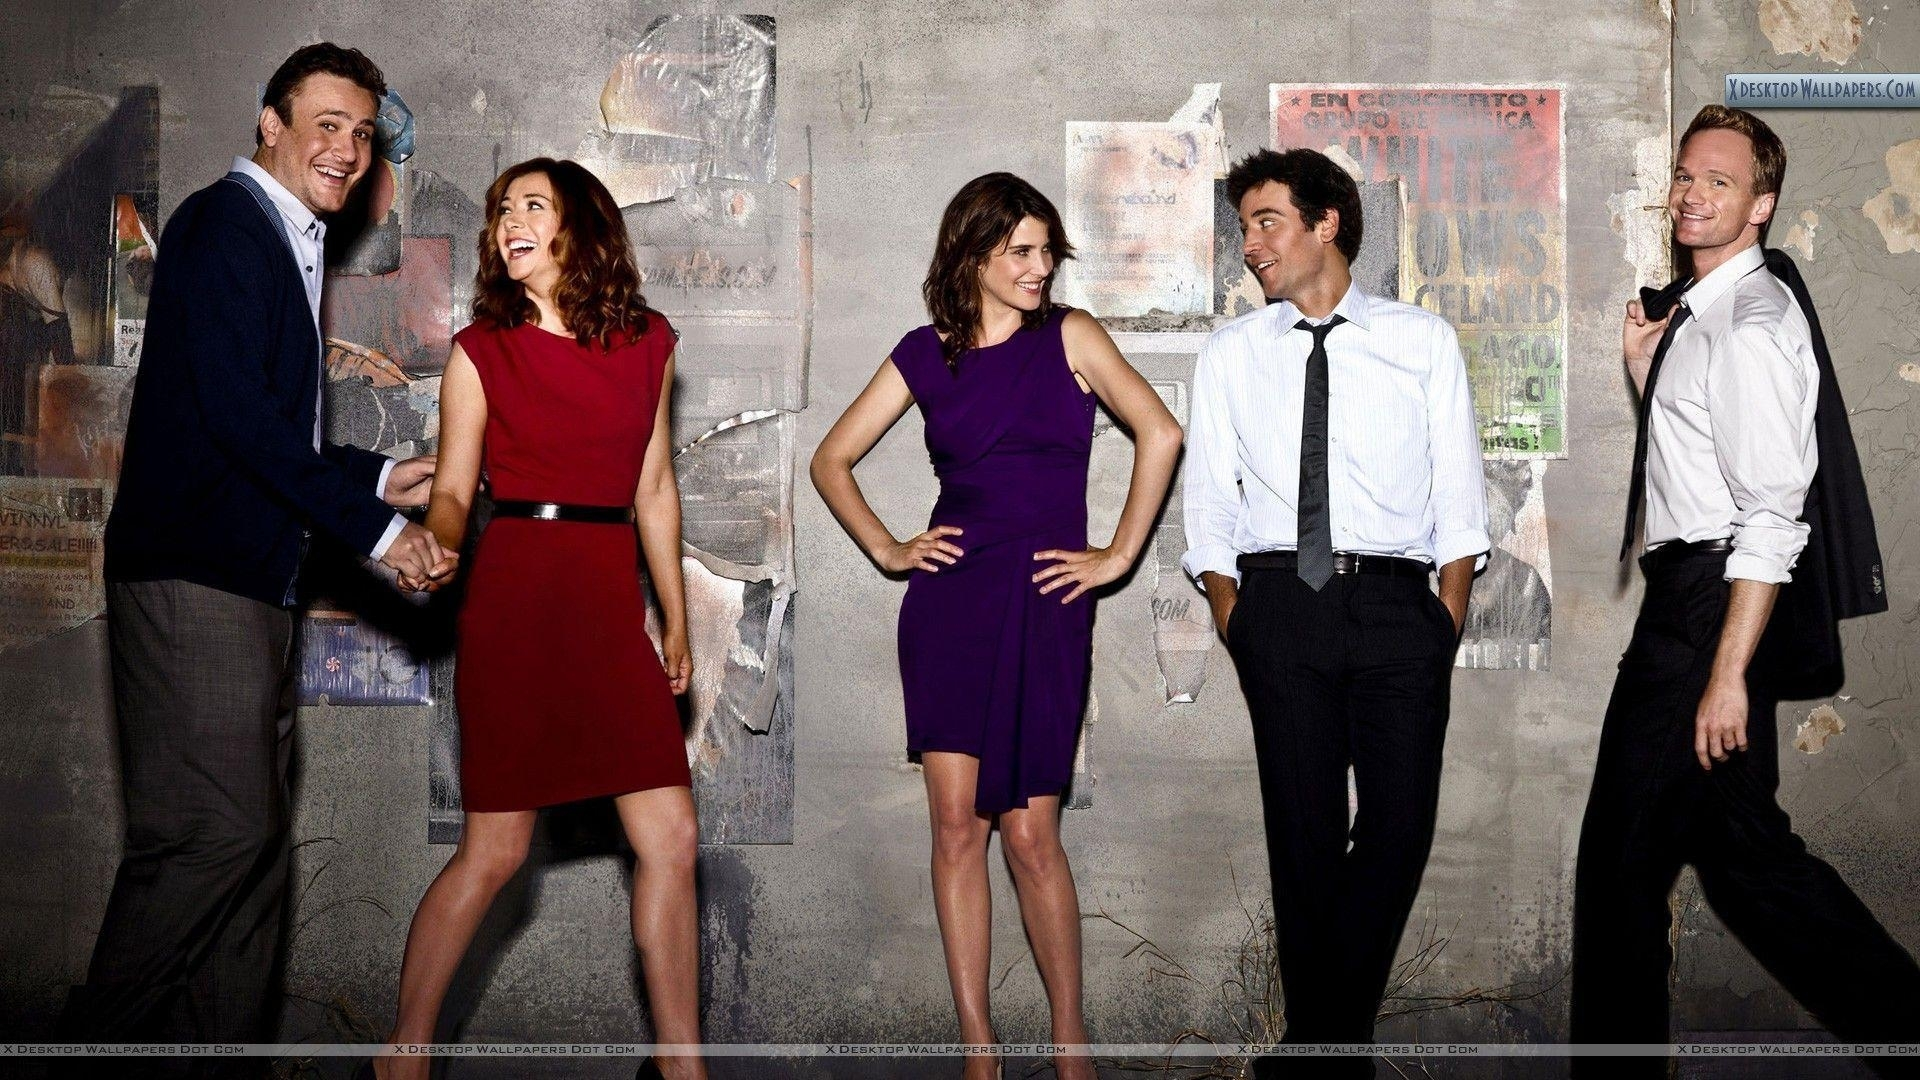 how i met your mother wallpapers - wallpaper cave